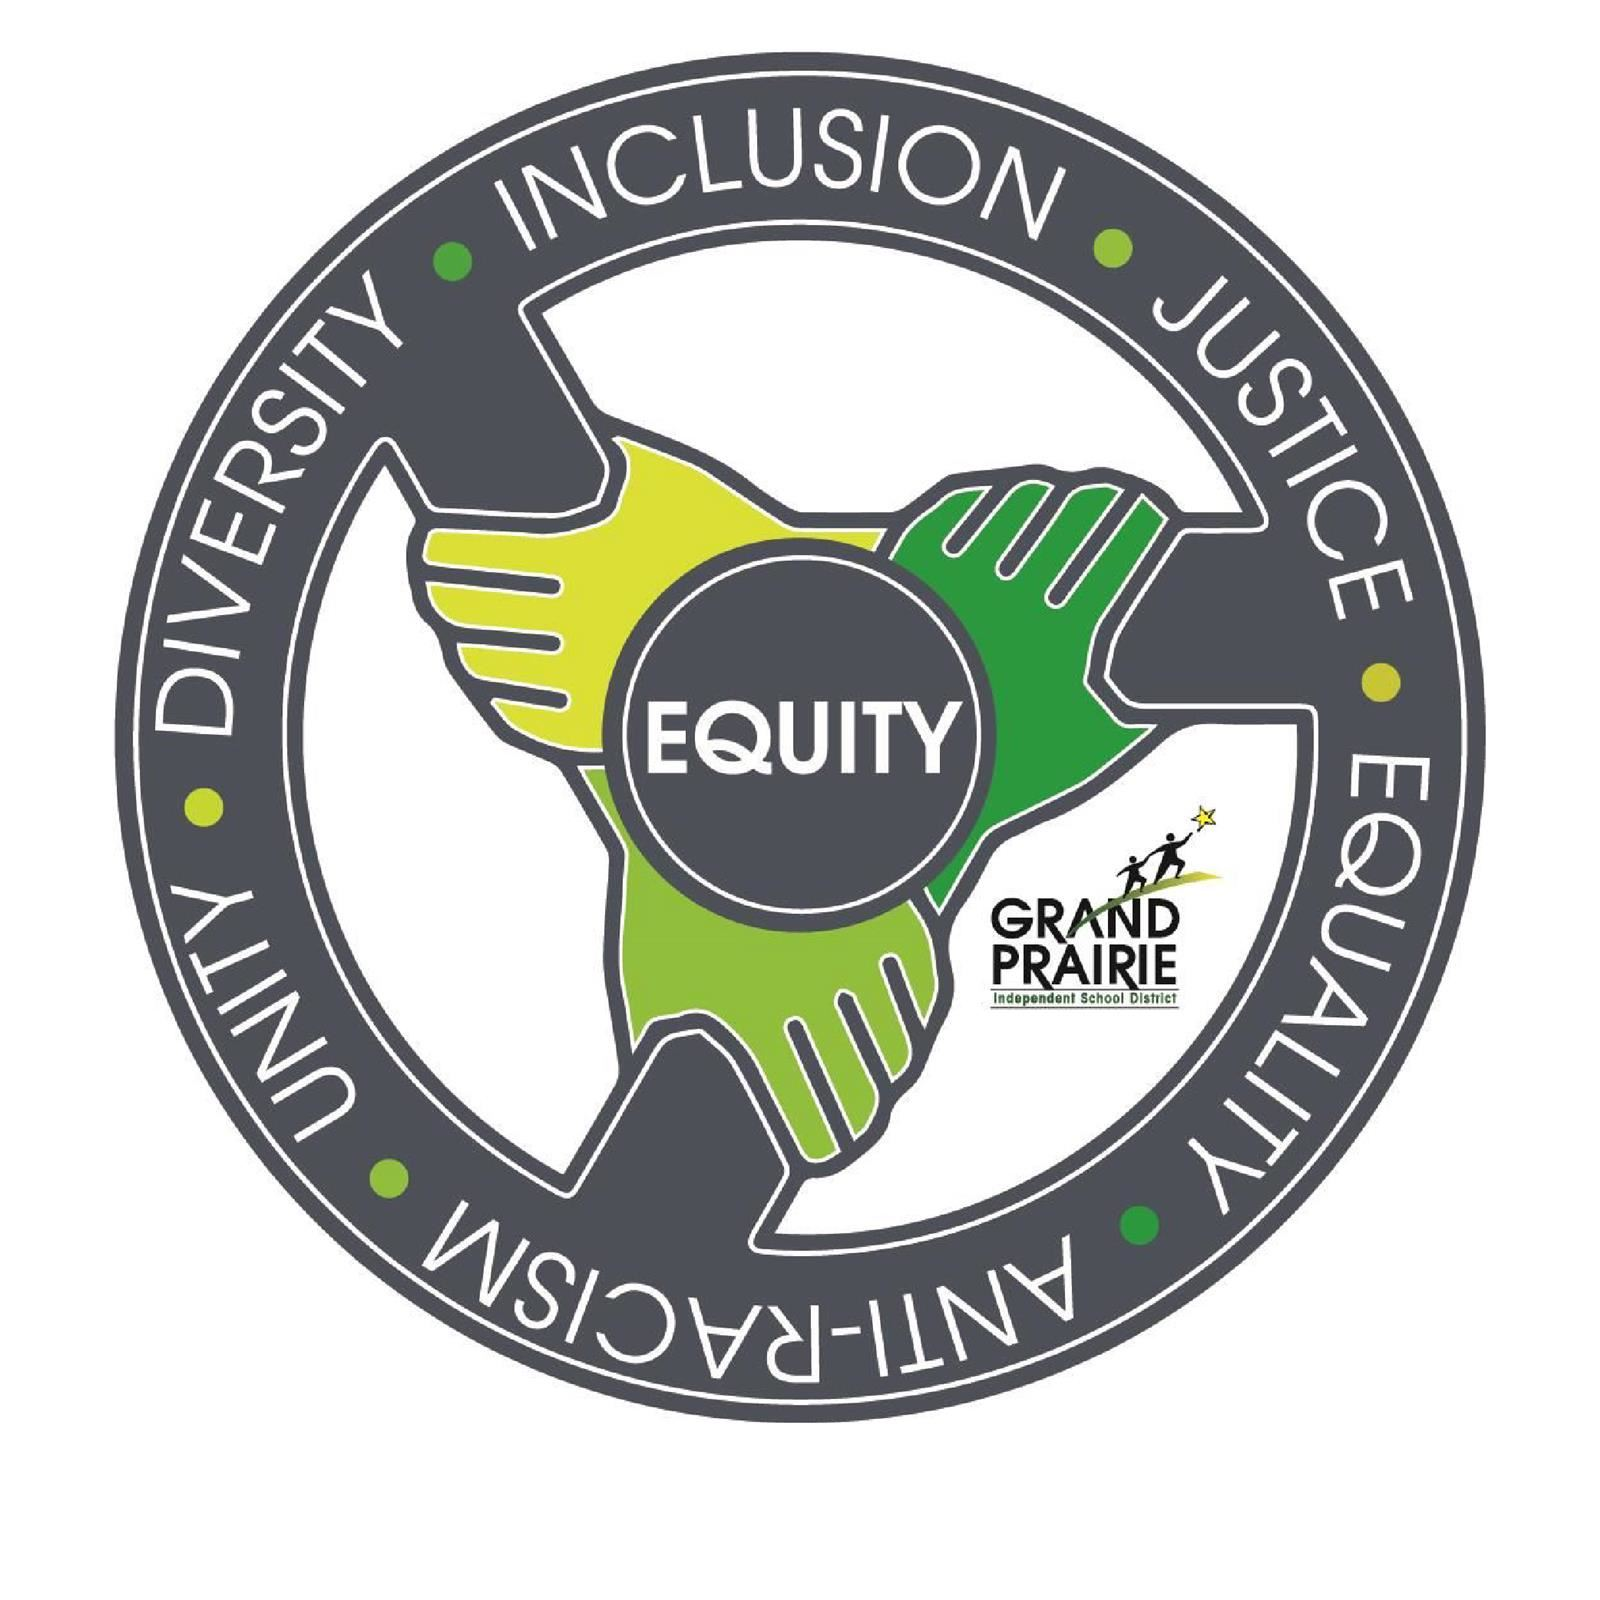 Justice, Equity, and Inclusion Resolution to Address Racial Equity